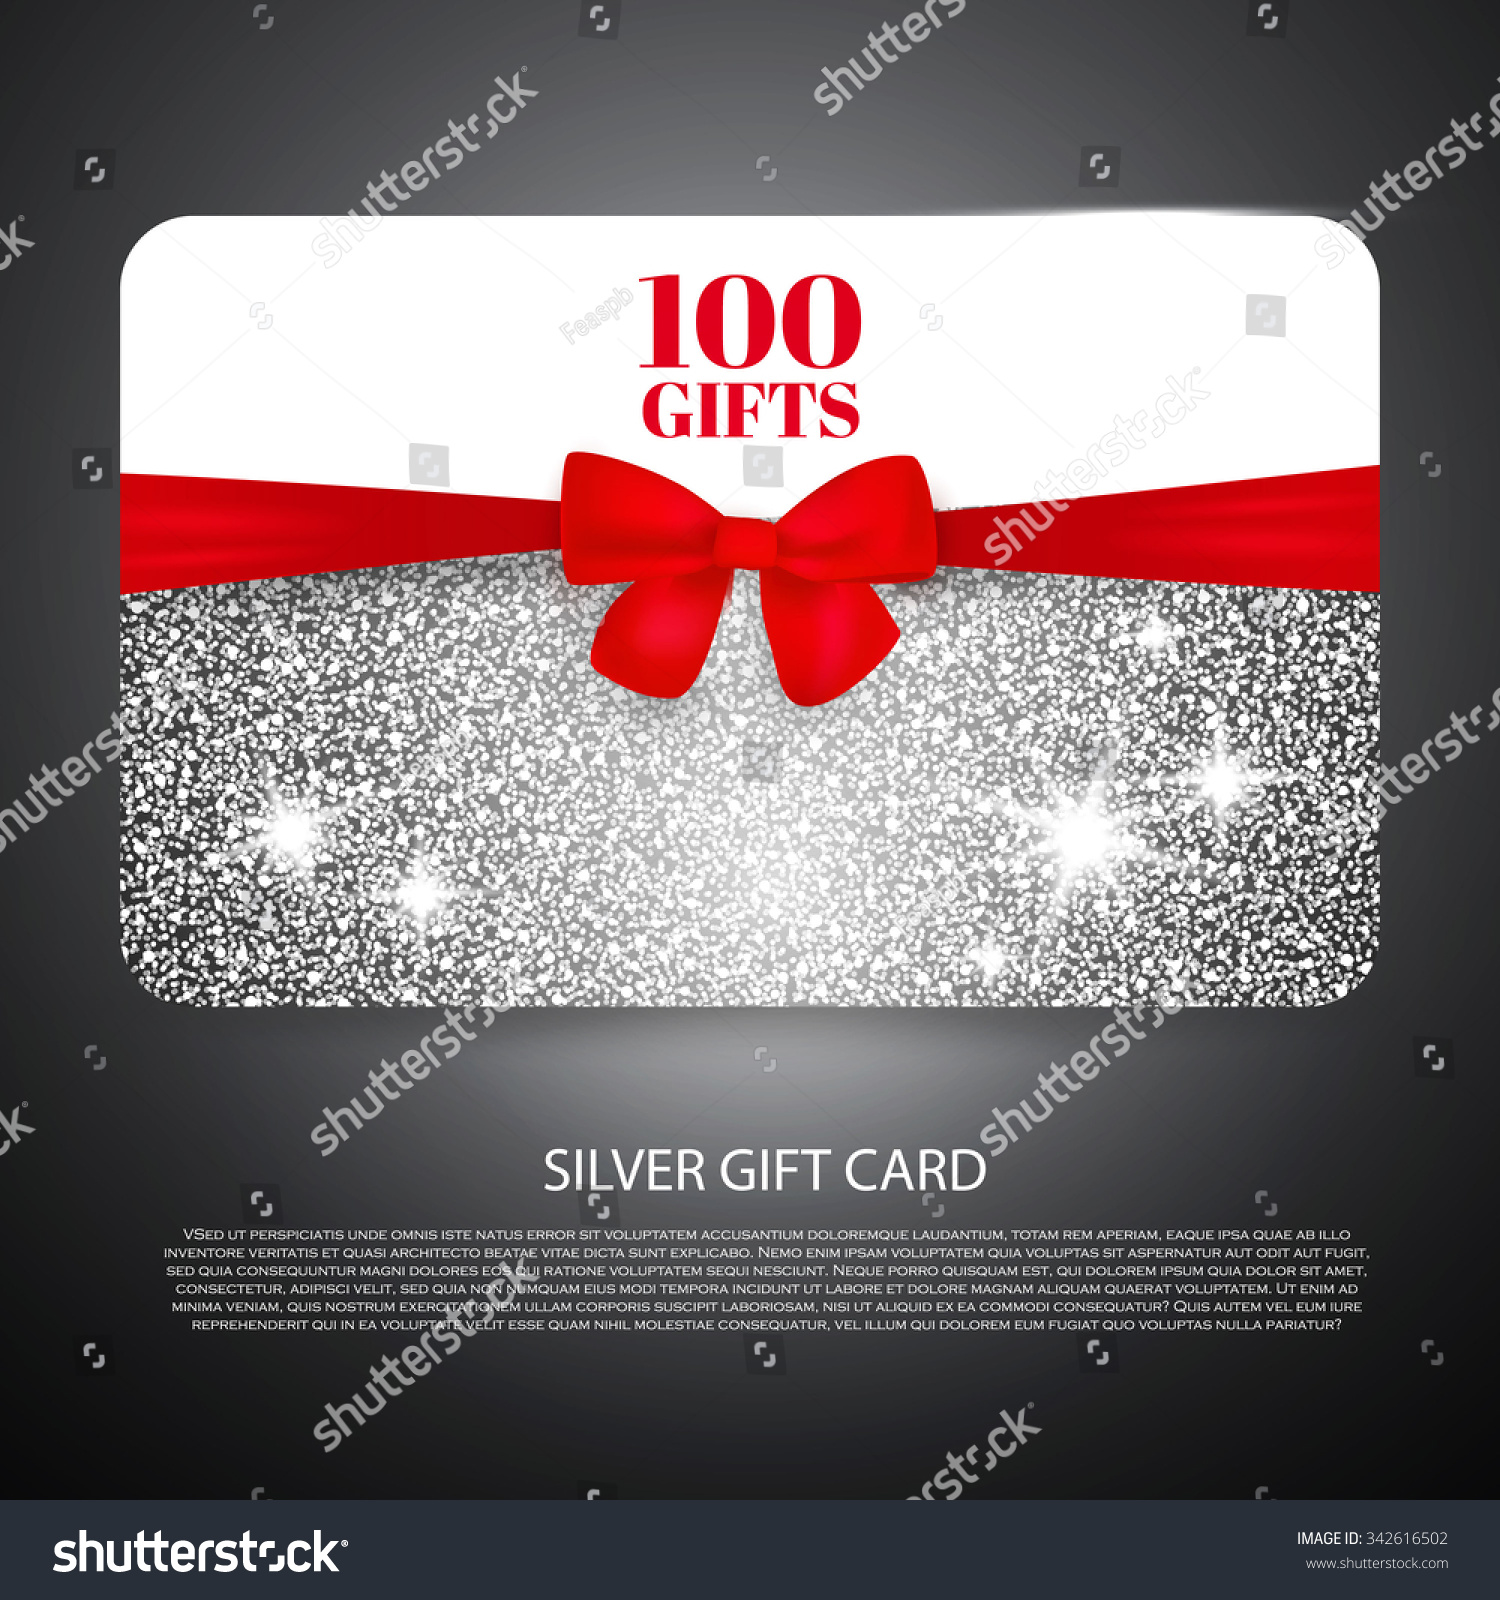 silver t coupon t card discount stock vector